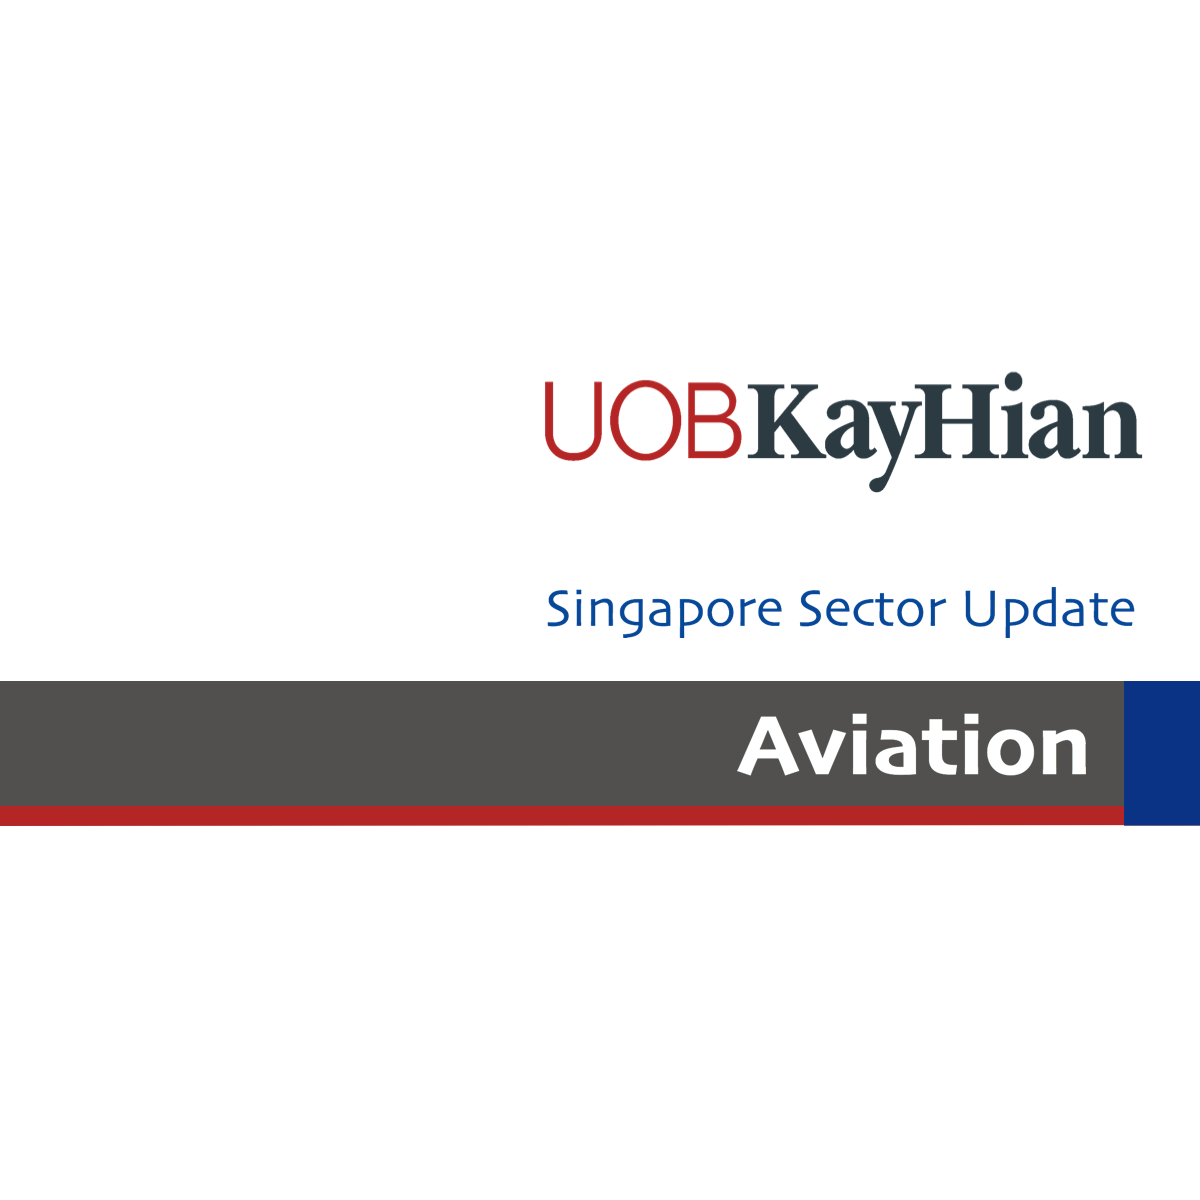 Aviation – Singapore - UOB Kay Hian 2018-03-09: SIA And SATS Moving Up The Value Chain Via E-Commerce JV With DFAAS